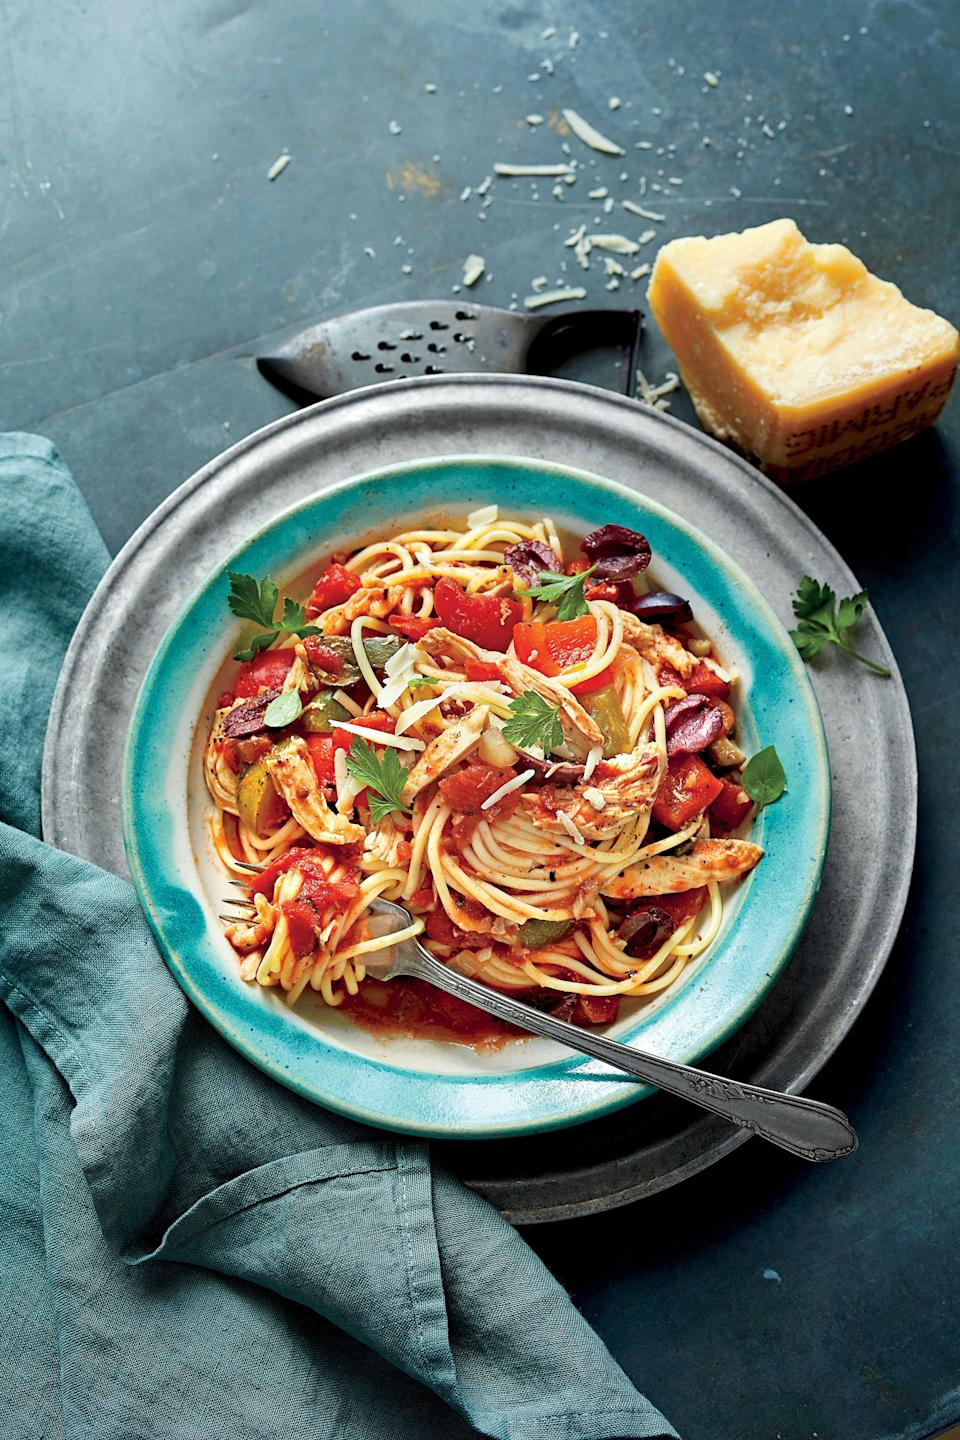 """<p><strong>Recipe: <a href=""""https://www.southernliving.com/syndication/slow-cooker-chicken-cacciatore-spaghetti"""" rel=""""nofollow noopener"""" target=""""_blank"""" data-ylk=""""slk:Slow-Cooker Chicken Cacciatore with Spaghetti"""" class=""""link rapid-noclick-resp"""">Slow-Cooker Chicken Cacciatore with Spaghetti</a></strong></p> <p>Spend 20 minutes in the kitchen prepping this gorgeous, hearty sauce. Once the sauce simmers in the cooker, all that's left to do is cook a pound of pasta, and serve.</p>"""